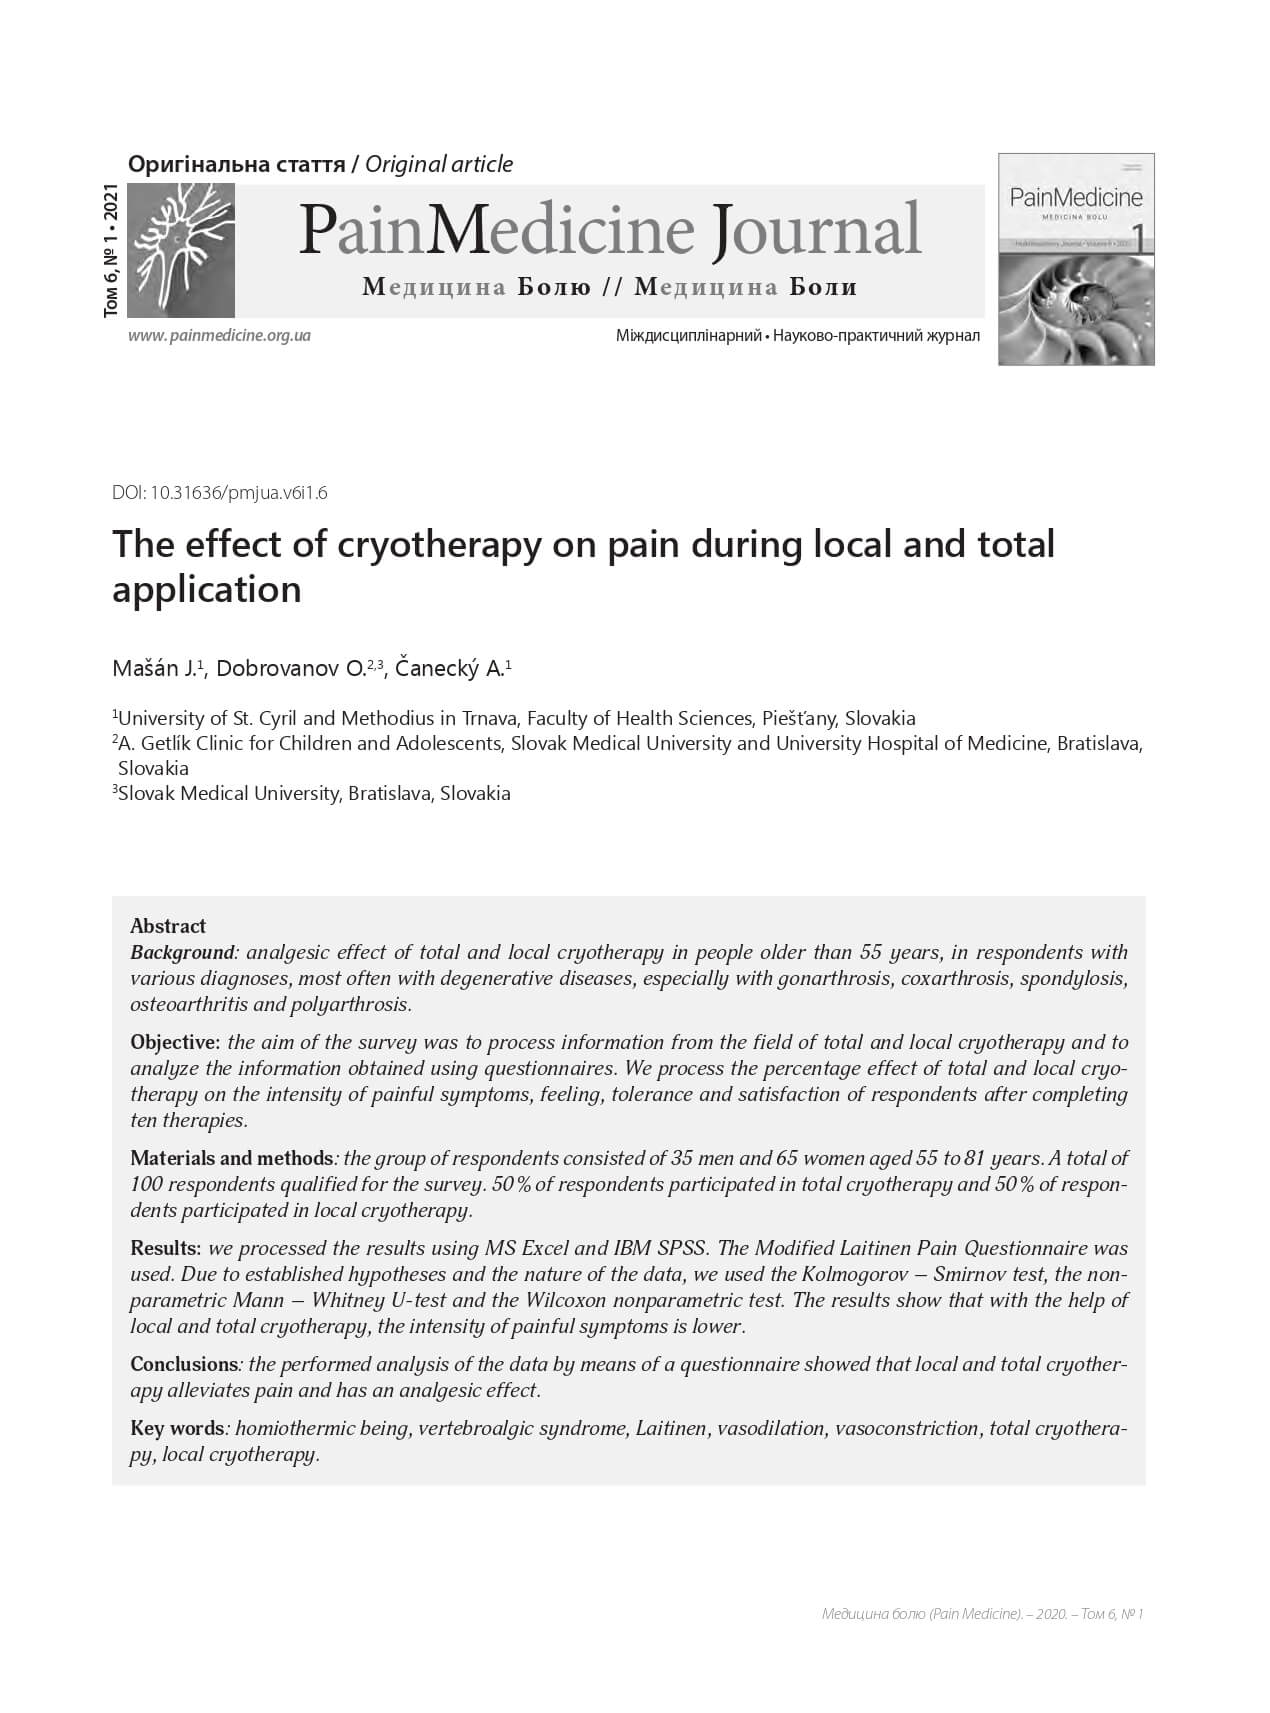 The effect of cryotherapy on pain during local and total  application